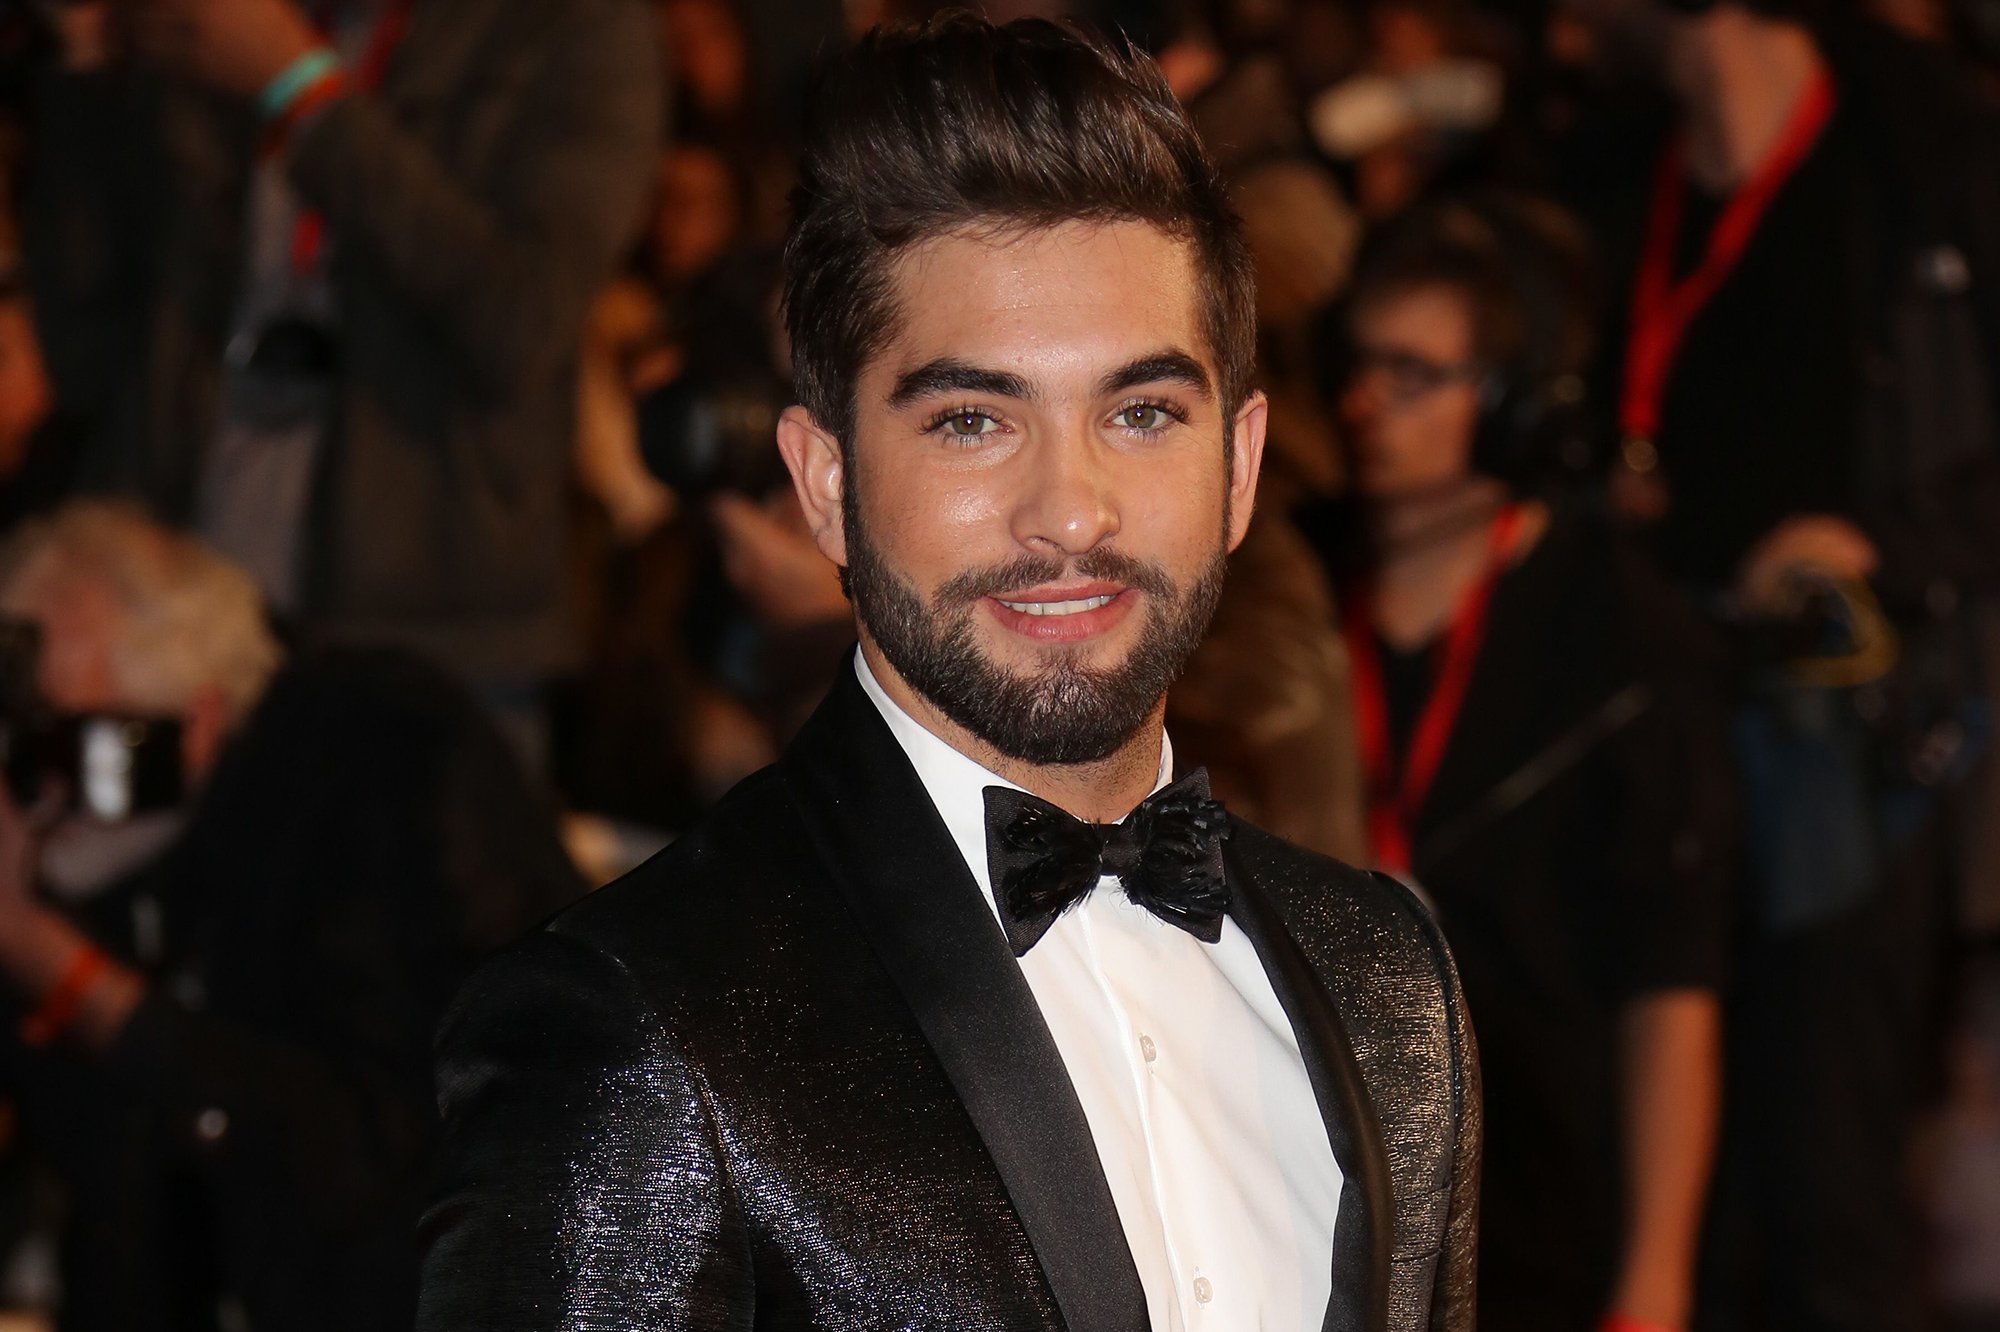 Kendji Girac arrives at the 16th NRJ Music Awards ceremony in Cannes,in the south of France. Cannes, FRANCE - 13/12/2014. ** Photos must not be used out of context.*/VULAURENT_2215175/Credit:LAURENTVU/NMA15/SIPA/1412132326